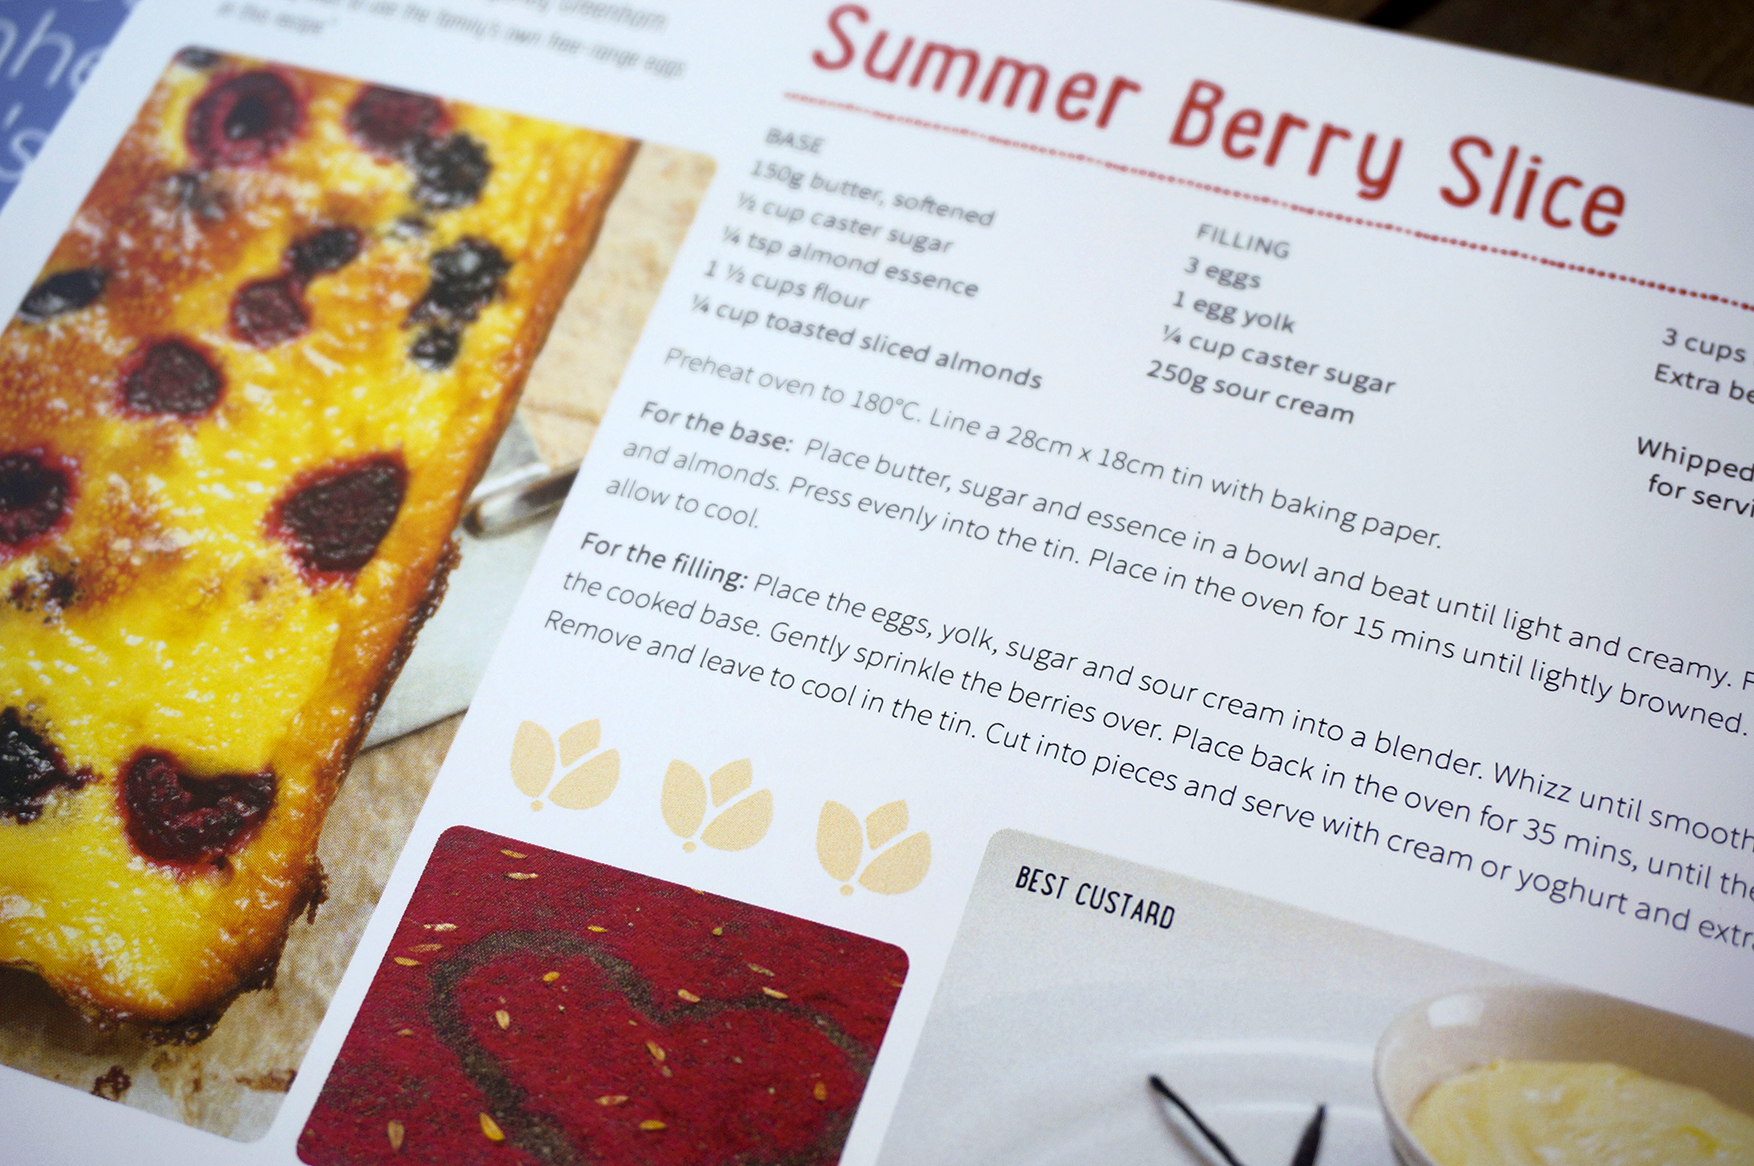 Summer Berry Slice recipe page